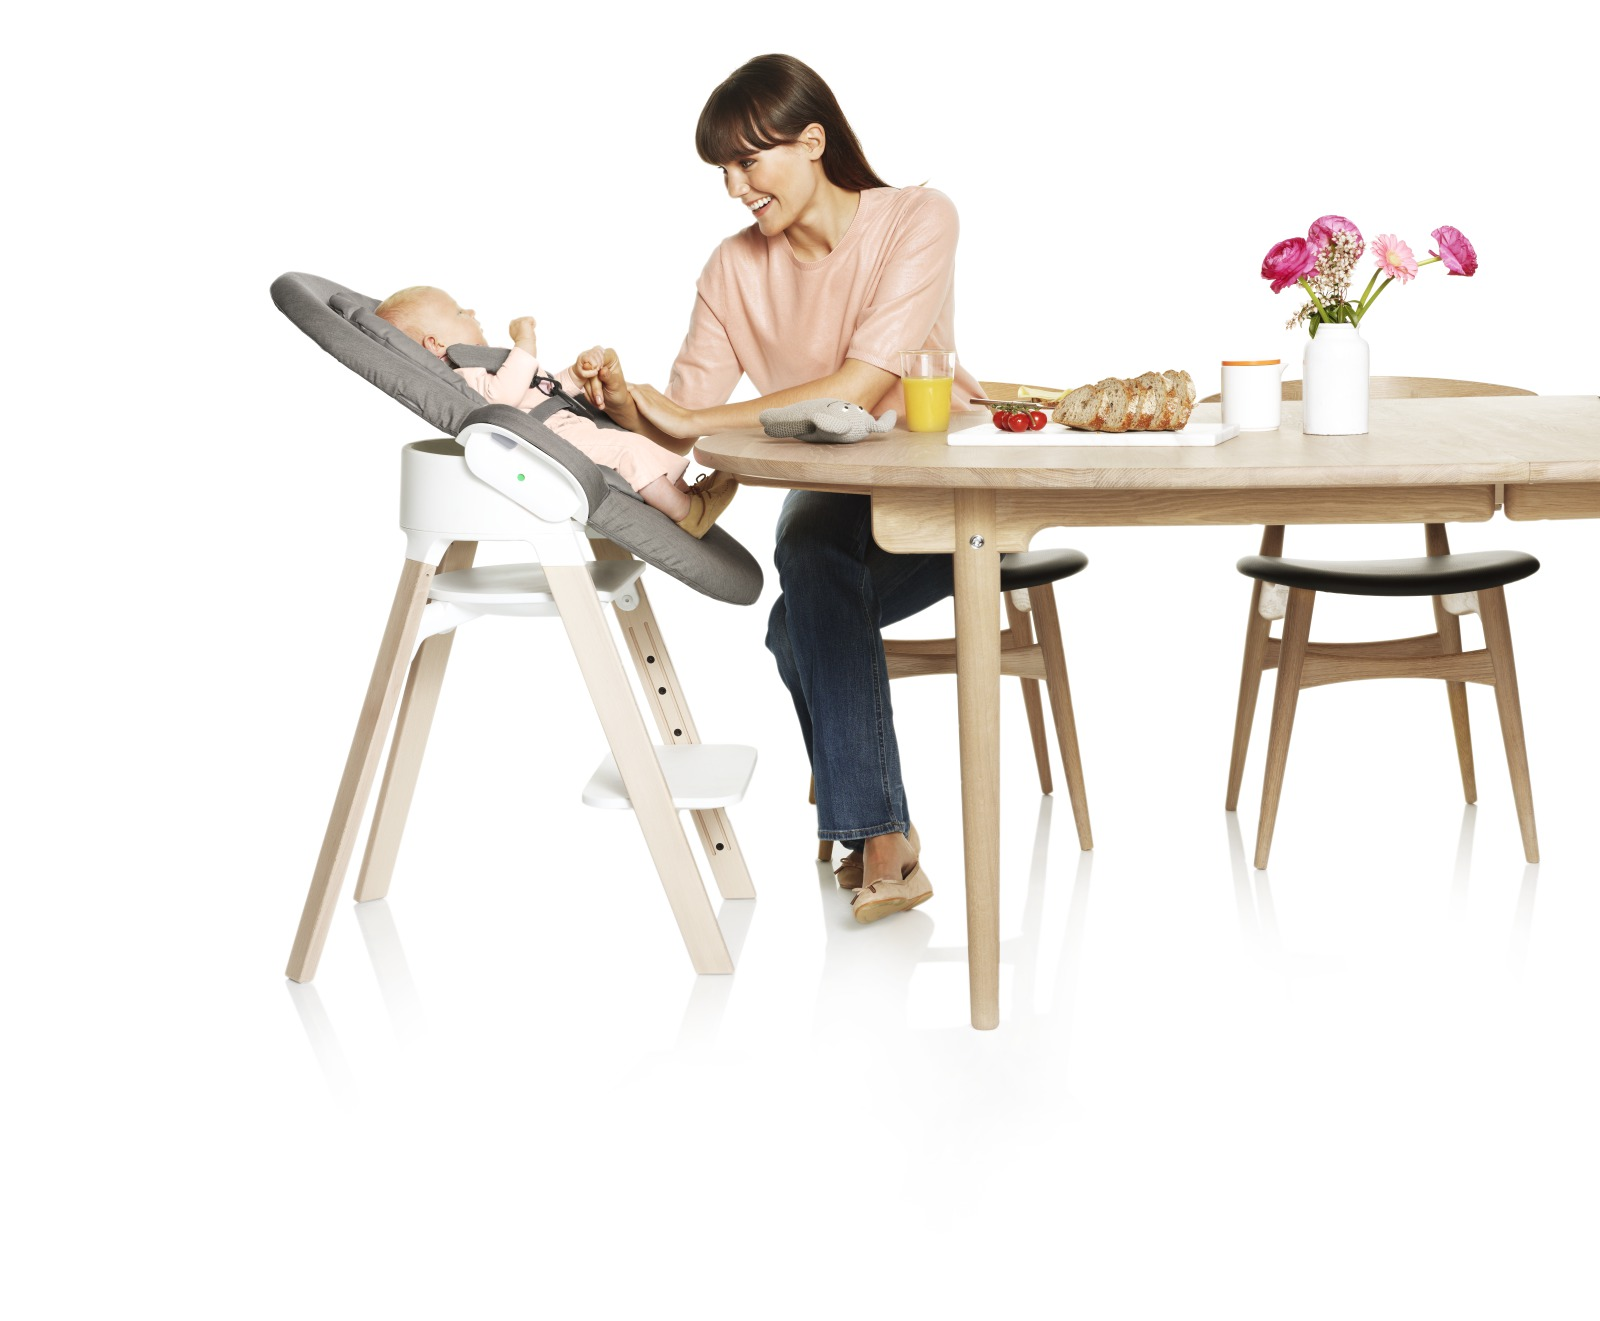 Stokke® Steps™ chair, Beech Natural, with Stokke® Steps™ Newborn Set attached. Greige Textiles.